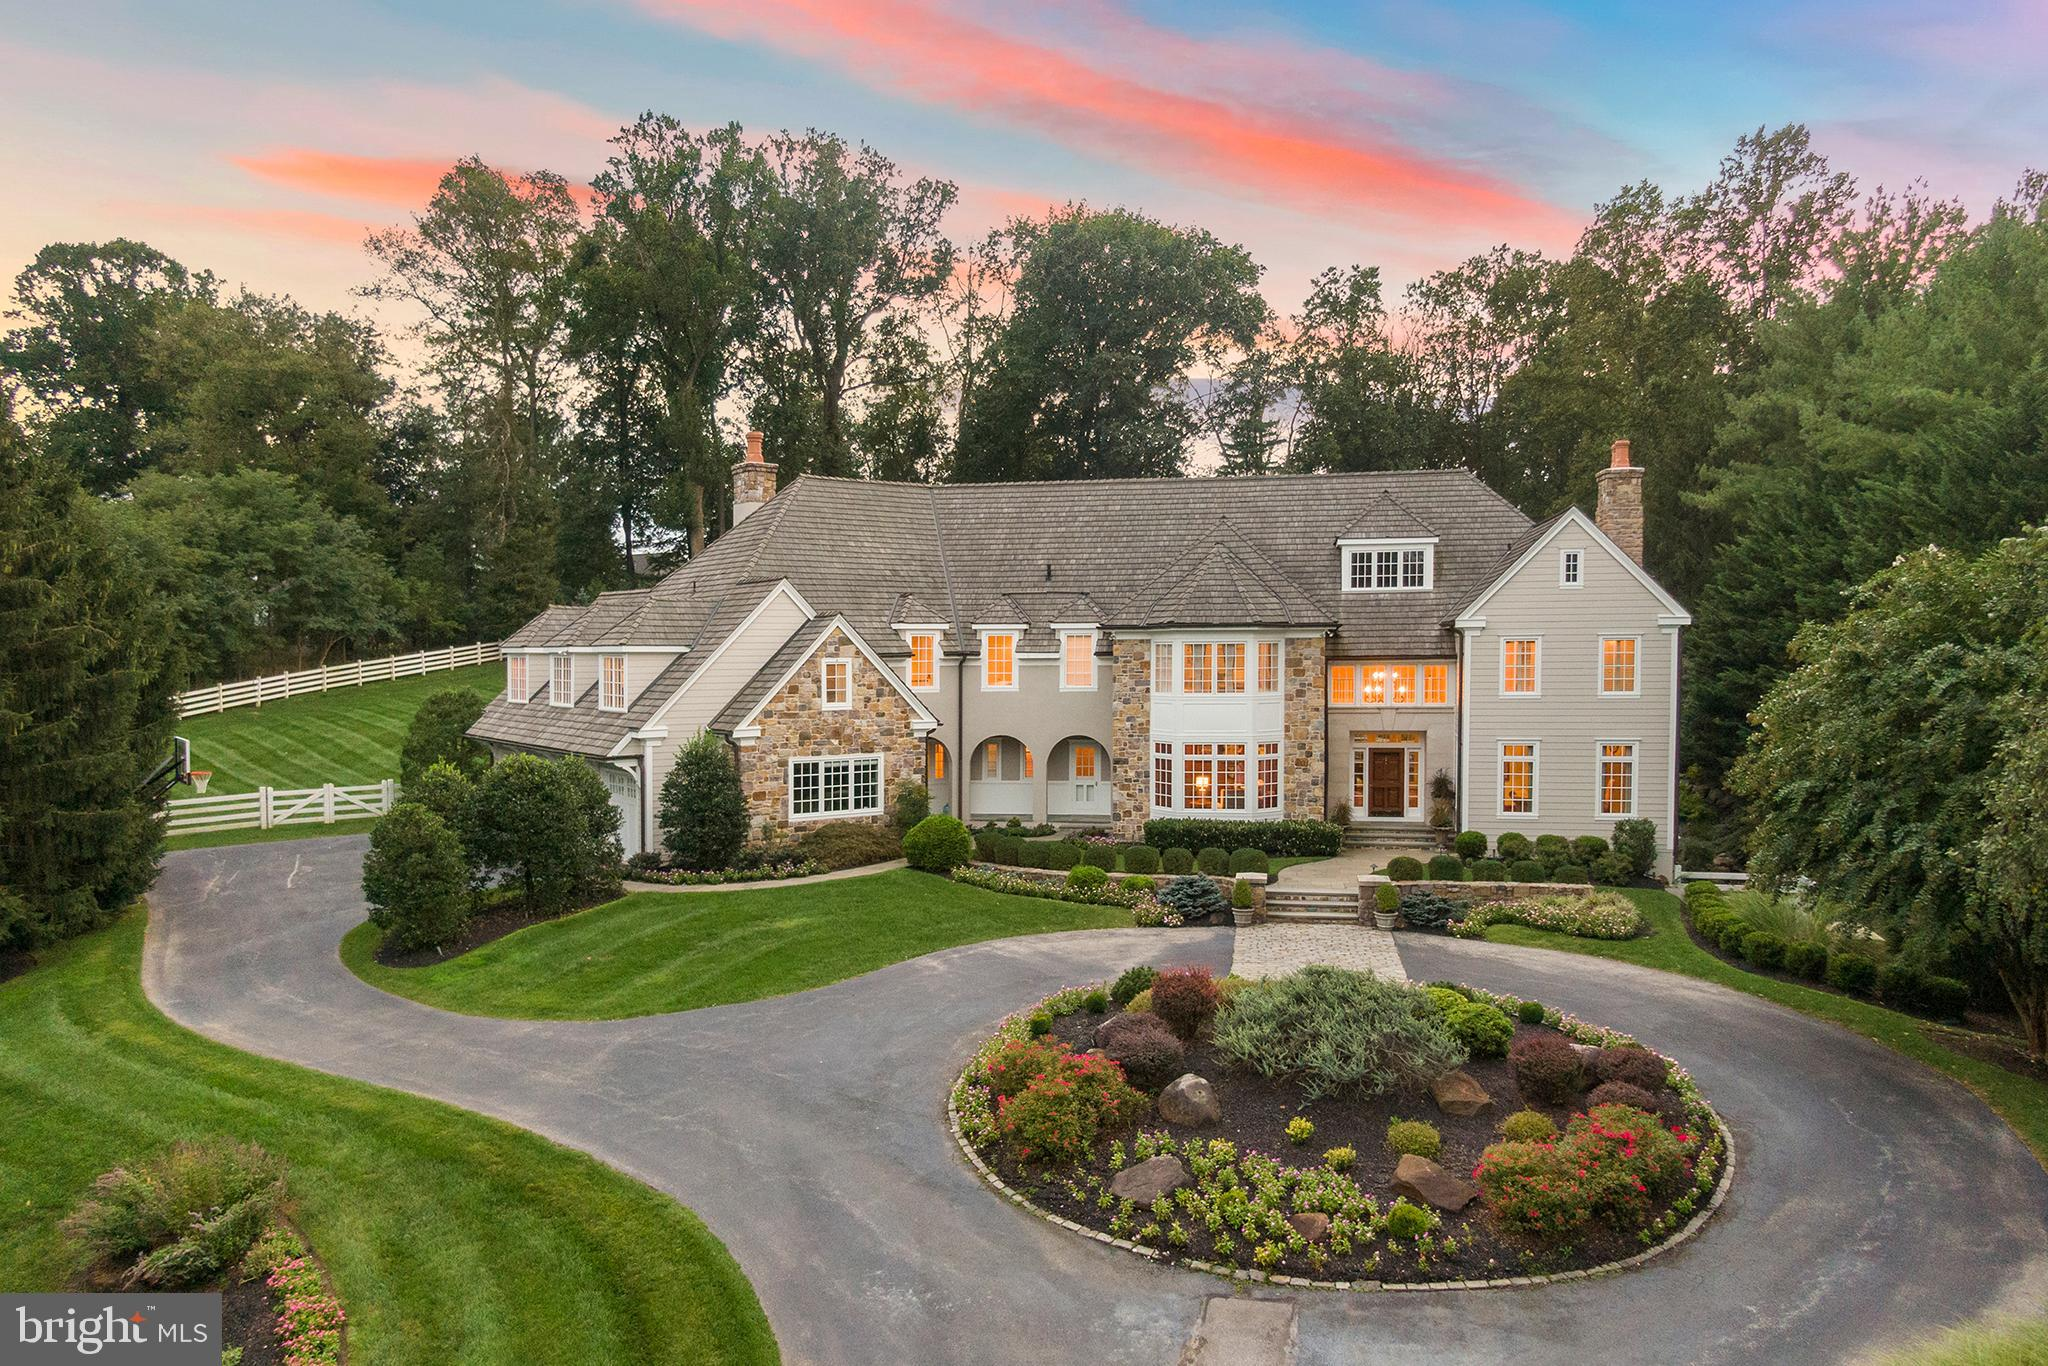 An idyllic Chester County setting is the backdrop for this fresh, highly styled 5 bedroom, 5.3 bath,turn-key estate home. Positioned on 2.3 professionally lit and landscaped acres with resort-quality amenities including terraces on all of the home's entertaining levels, a waterfall, koi pond and grotto, gorgeous swimming pool and spa, gas and wood-burning fire pits, and built-in grill, all ringed by mature evergreens for year-round enjoyment and privacy. A superior floor plan opens to a spacious volume reception Foyer with the straight-thru architecture leading to views of lawns and gardens. Designed for a seamless flow while entertaining, the Living and Dining rooms open to the entrance, striking just the right balance between formal and casual welcome. The home also offers an exceptional high-yield workspace with two beautifully outfitted home Offices. One provides direct access from the front turning circle creating that needed separation between work and family life. The Kitchen is as stunning as it is functional. Bright, well-planned connected! A suite of professional appliances, generous flat prep areas, and custom cabinetry form the perimeter around a large marble-topped seated center island. Steps away and warmed by western exposure through conservatory-sized windows, the Breakfast Room flows into the Great Room. One of the home's three fireplaces is highlighted by rich surround paneling with an over-look Loft adding height and dramatic appeal. Ascend a sweeping front staircase to a large Primary suite. A neutral color palette double exposure of eastern and western facing windows and a tray ceiling deliver a serene and relaxing experience.  A large spa bath and a truly spacious walk-in closet complete the primary suite. Four additional guest or family bedrooms complete this floor. The home's Lowest Level offers a full walk-out to the garden and terrace and is an exciting level of the house. The 2400 bottle temp-controlled Wine Cellar is detailed with hand-he